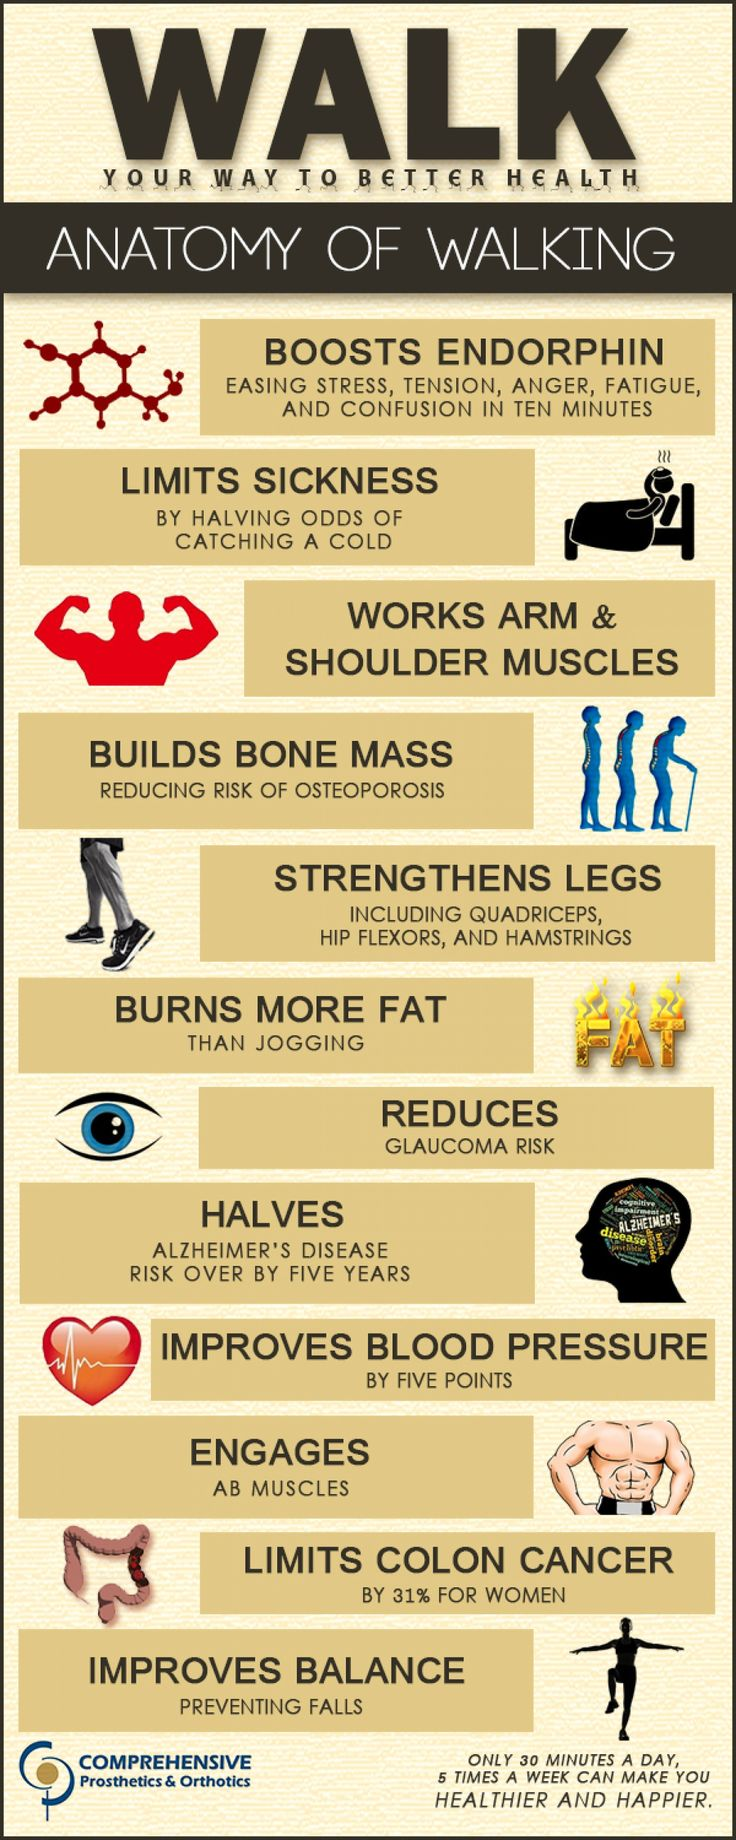 Walk your way to better health. This infographic illustrates how regular walking can lead to overall good health.